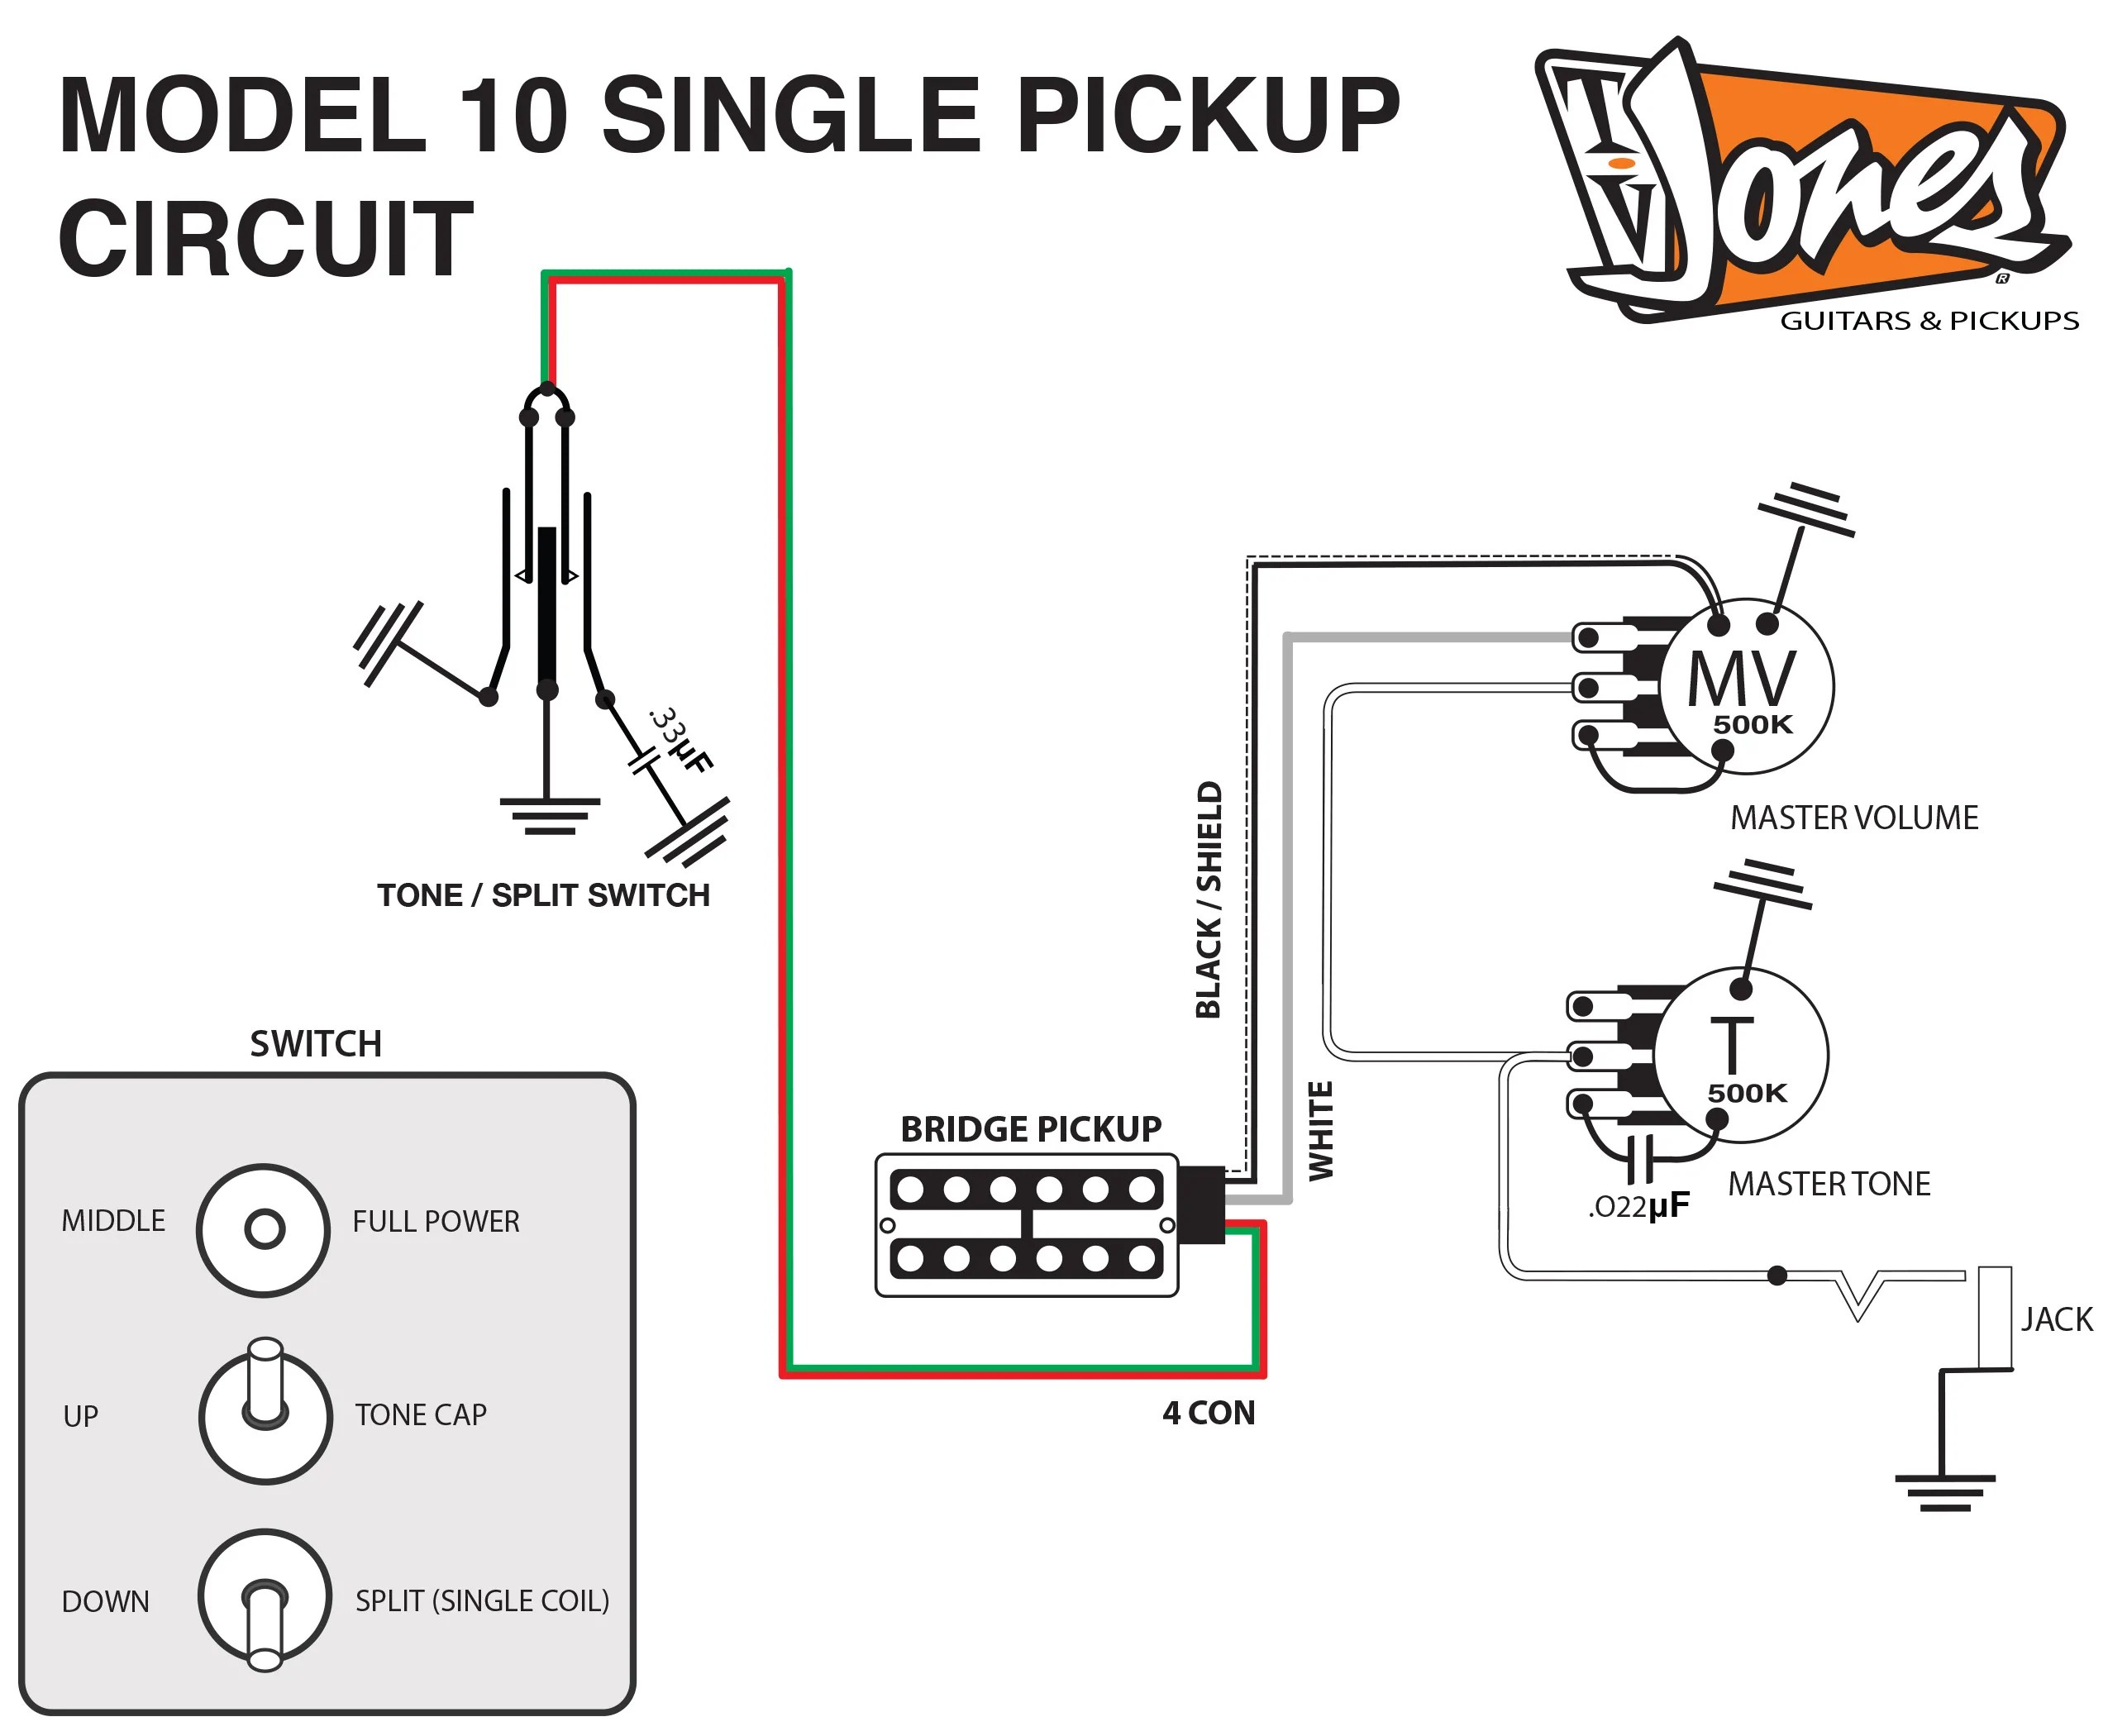 small resolution of tv jones product dimensions tv jones wiring diagram